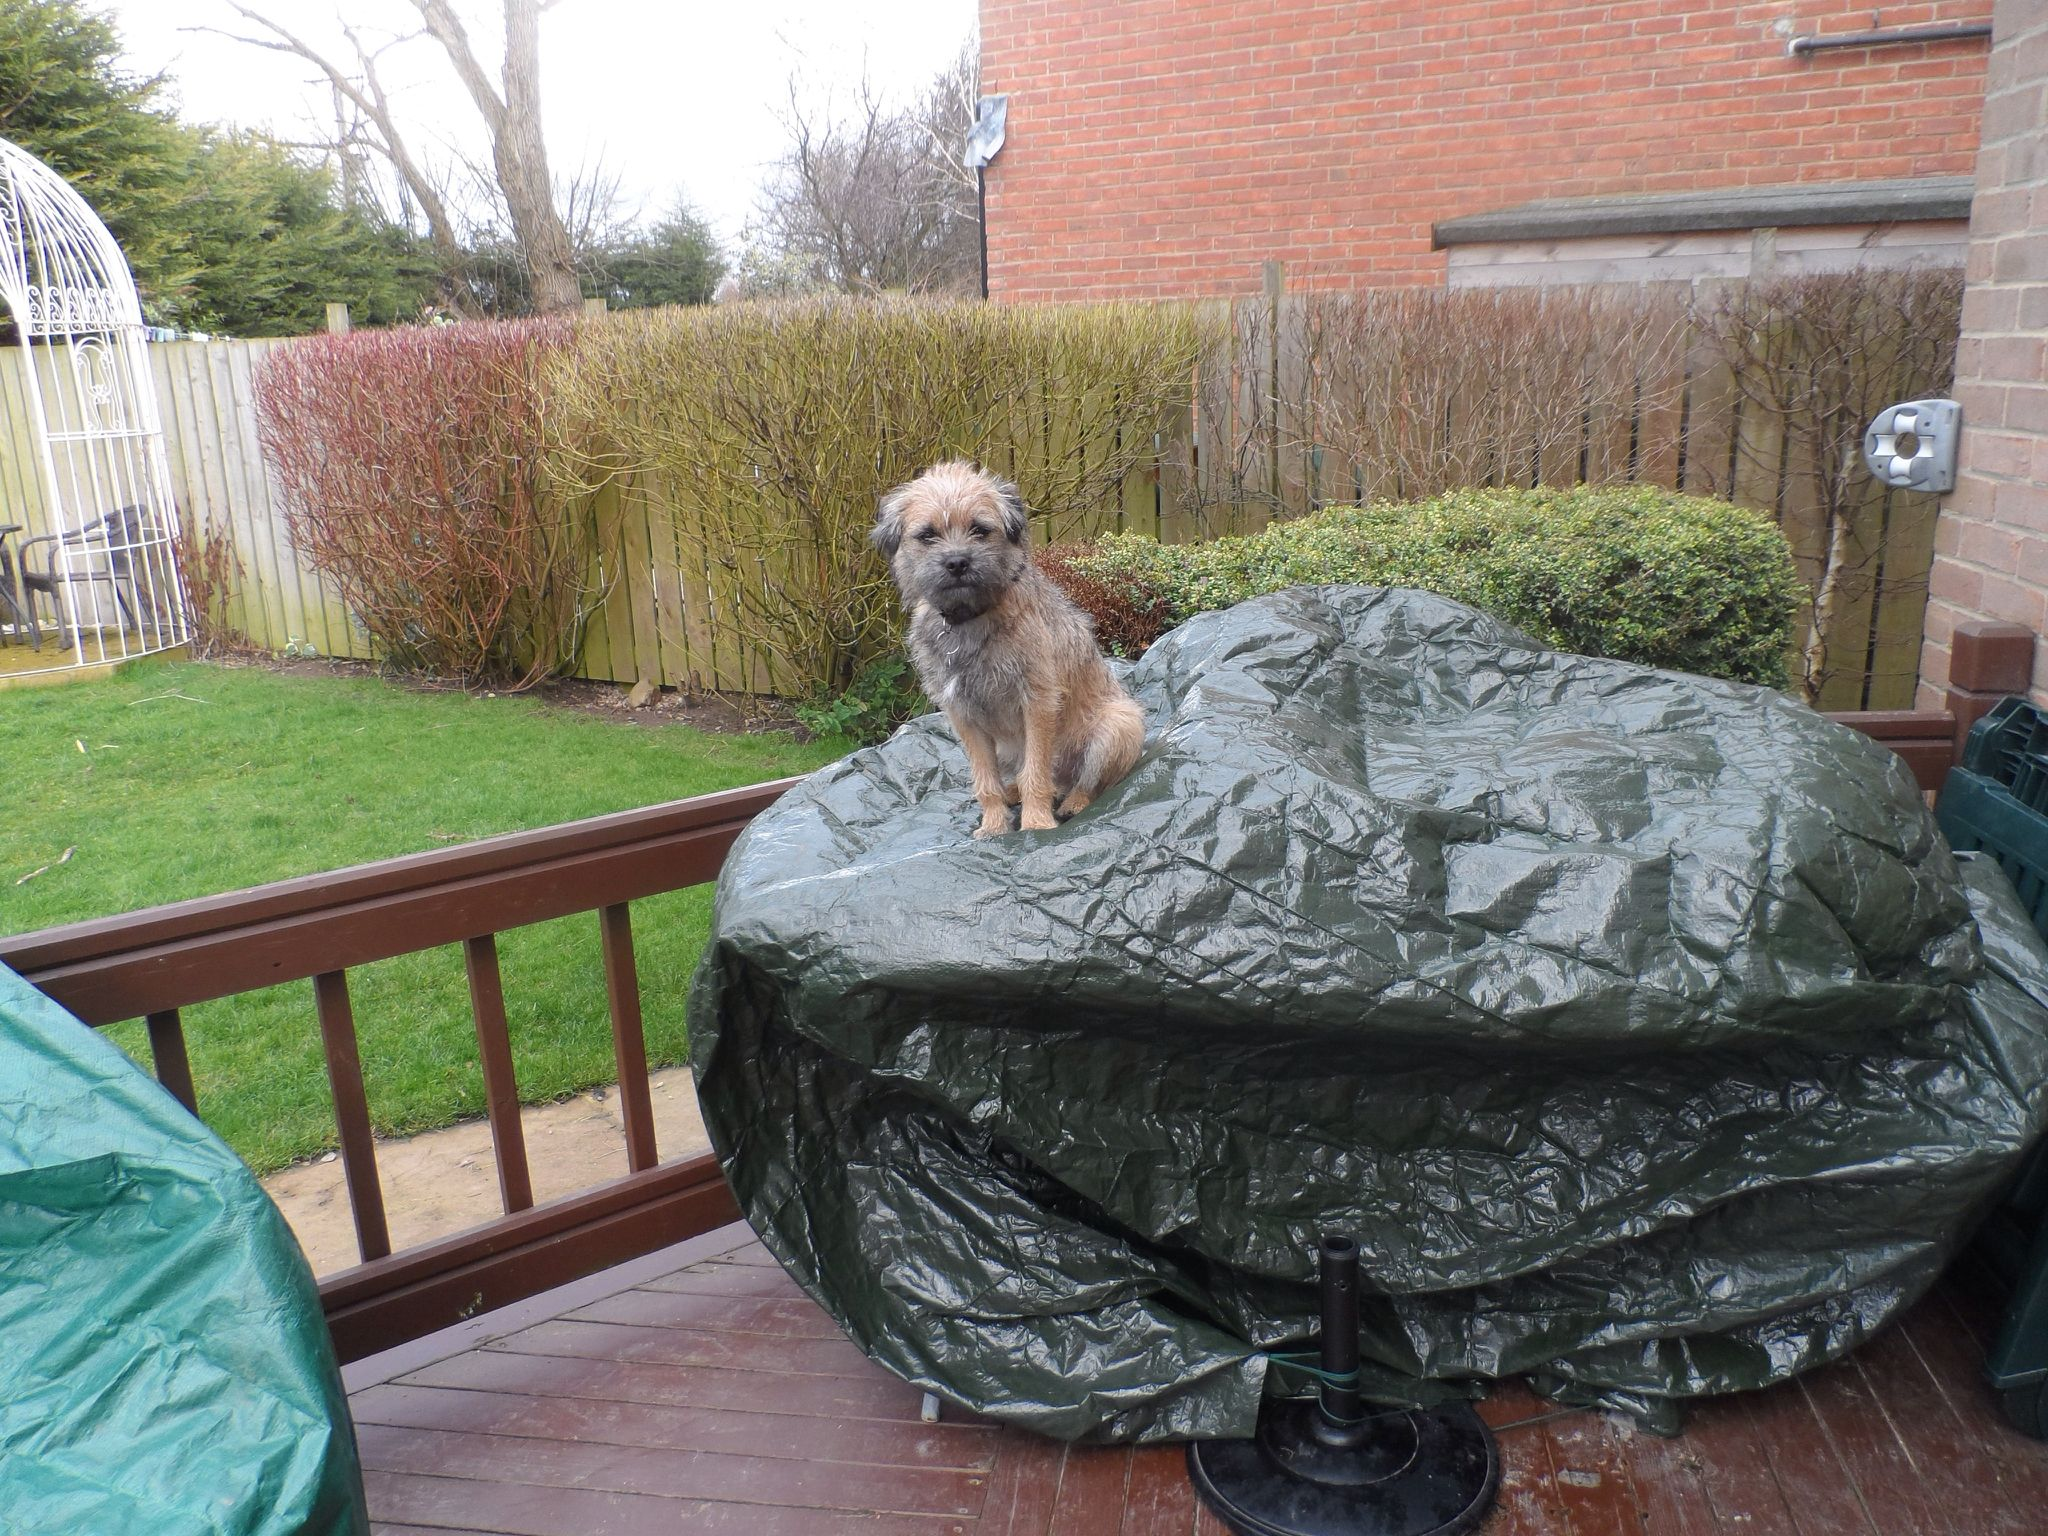 Marley - how on earth did he get up there?!!!